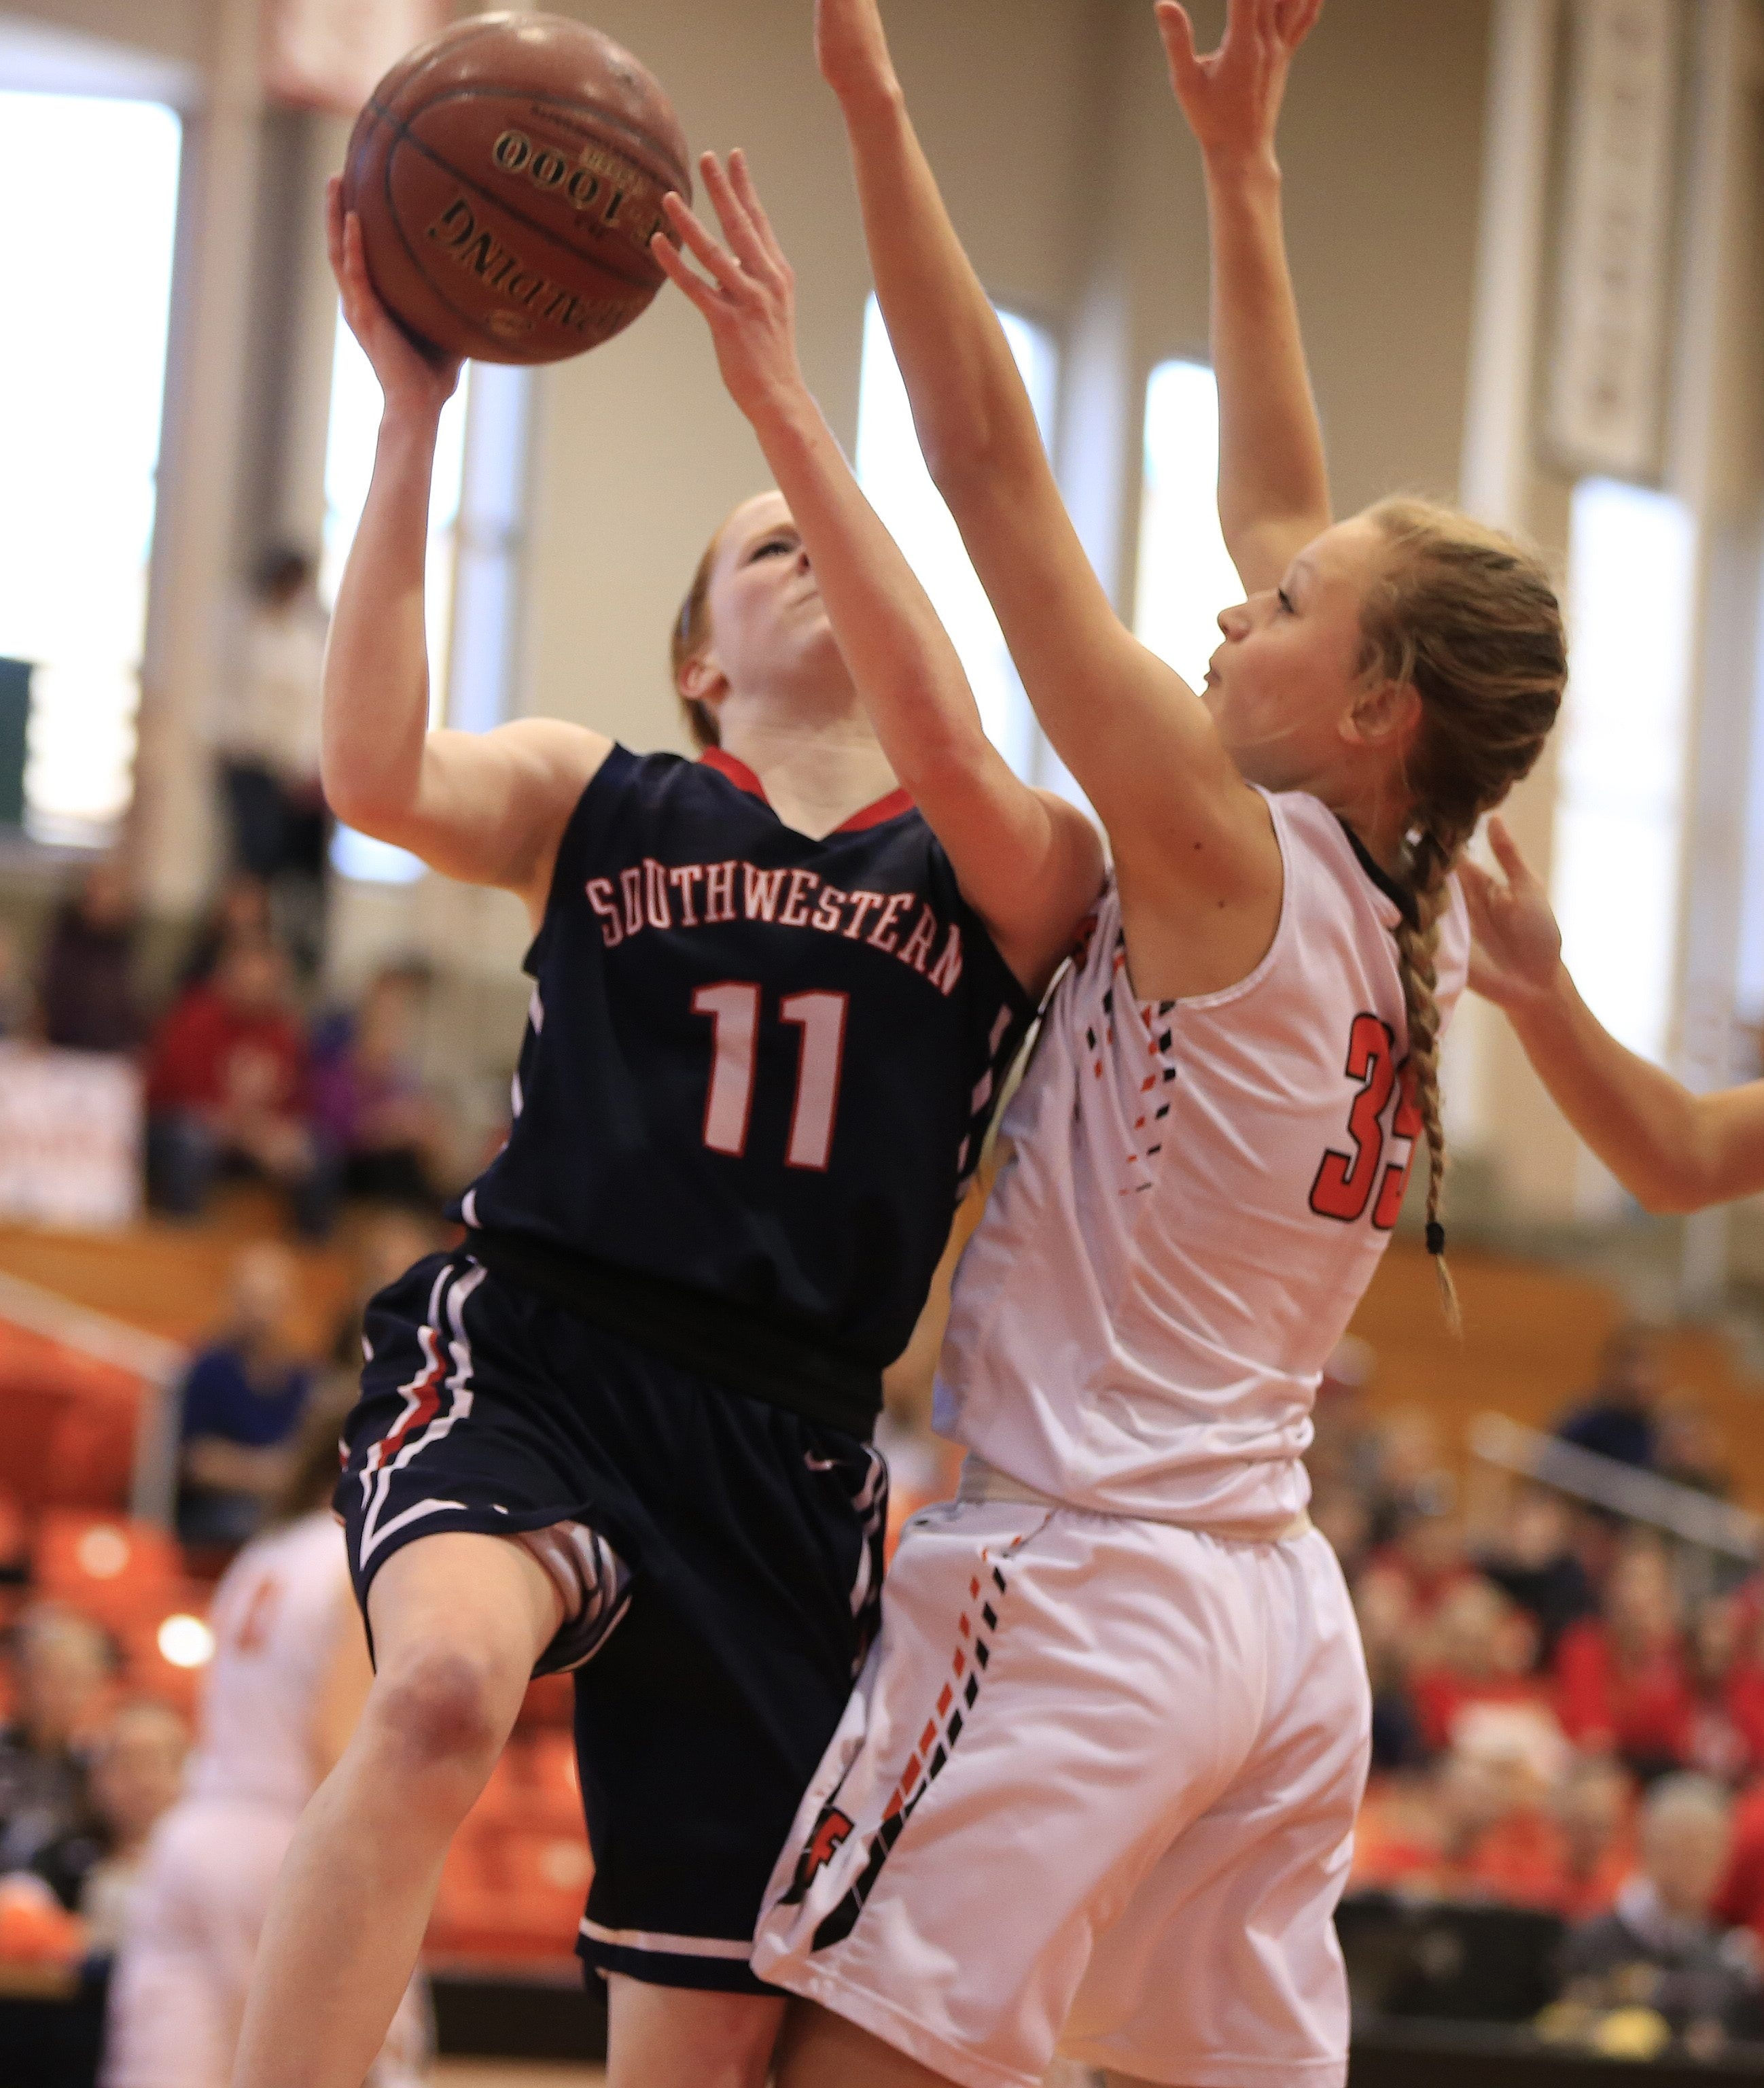 Southwestern's Hayden Burgeson drives against Fredonia during the first half at Buffalo State.